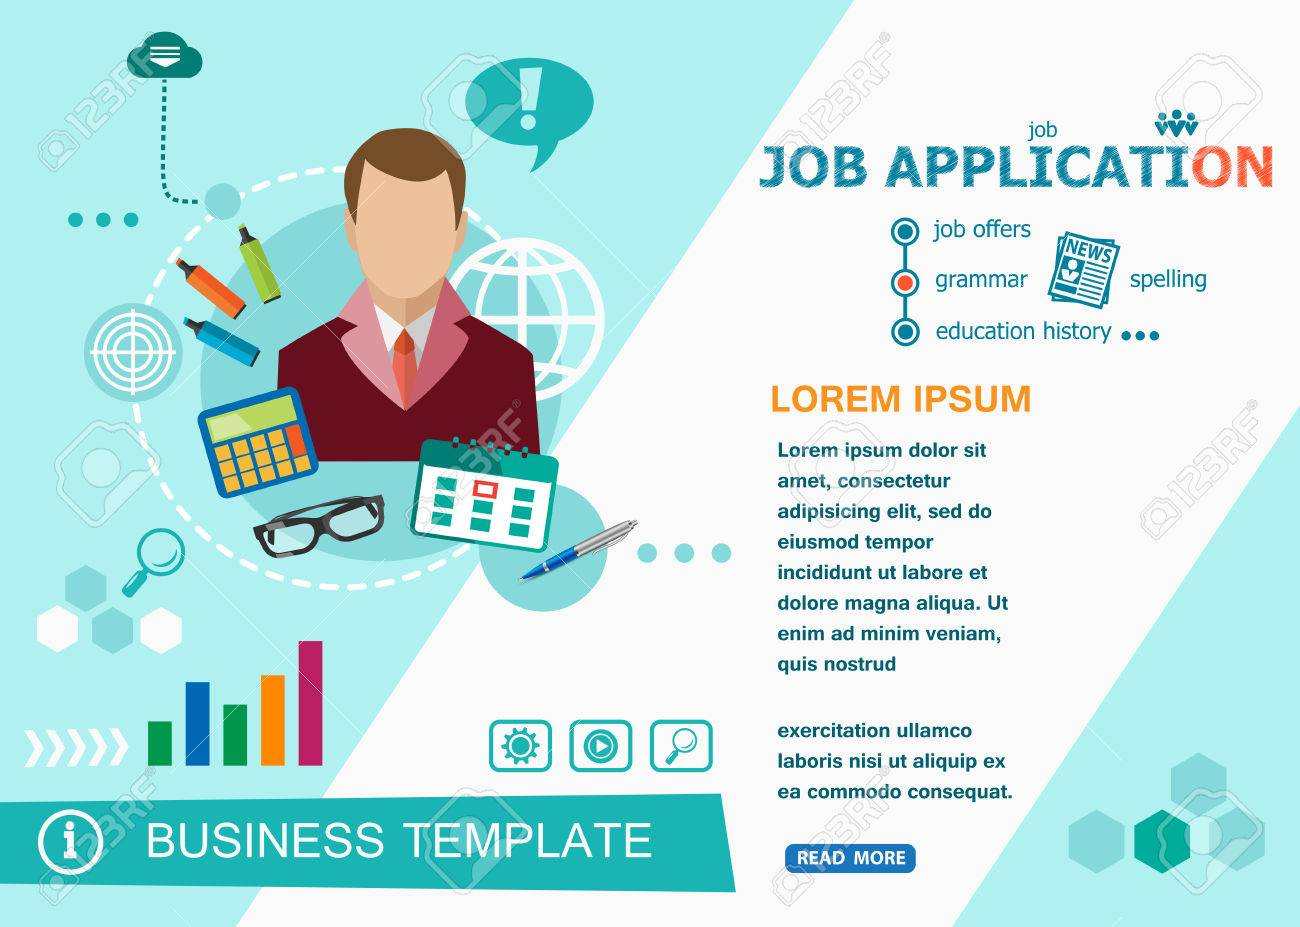 job application design concepts of words learning and training job application design concepts of words learning and training job application flat design banners for